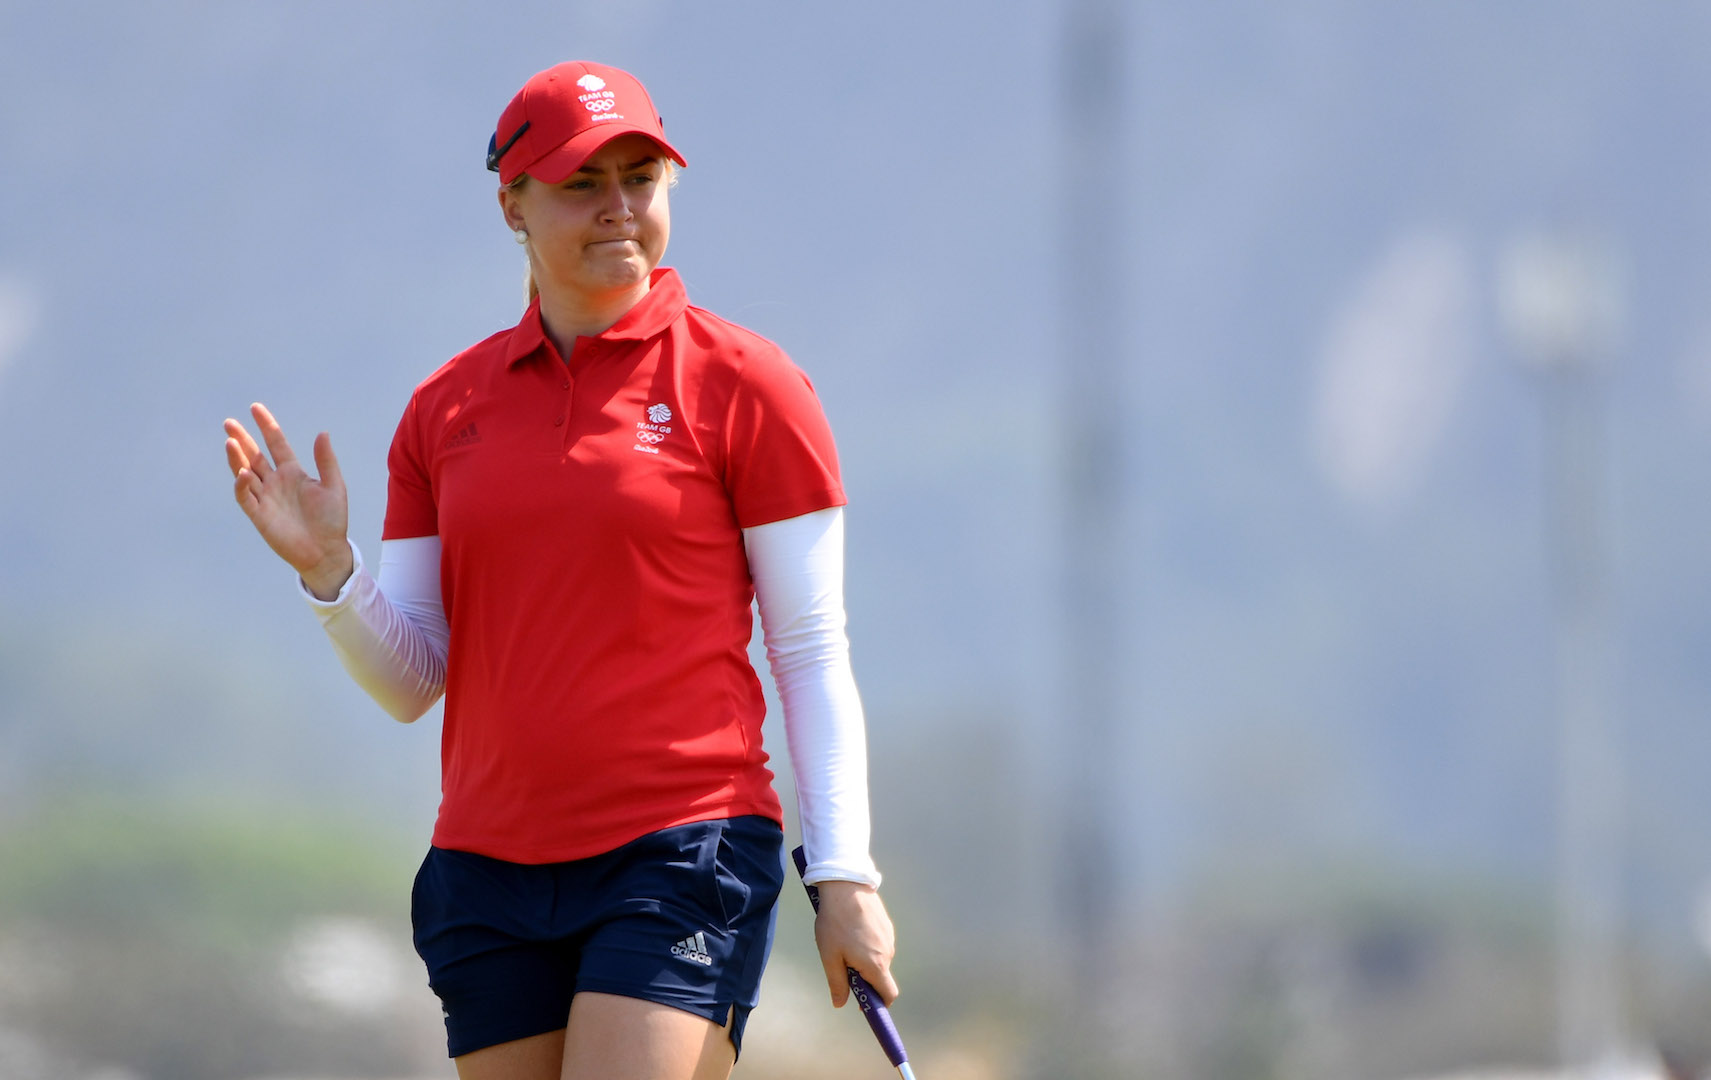 Russian Cyber Terrorists Target Charley Hull